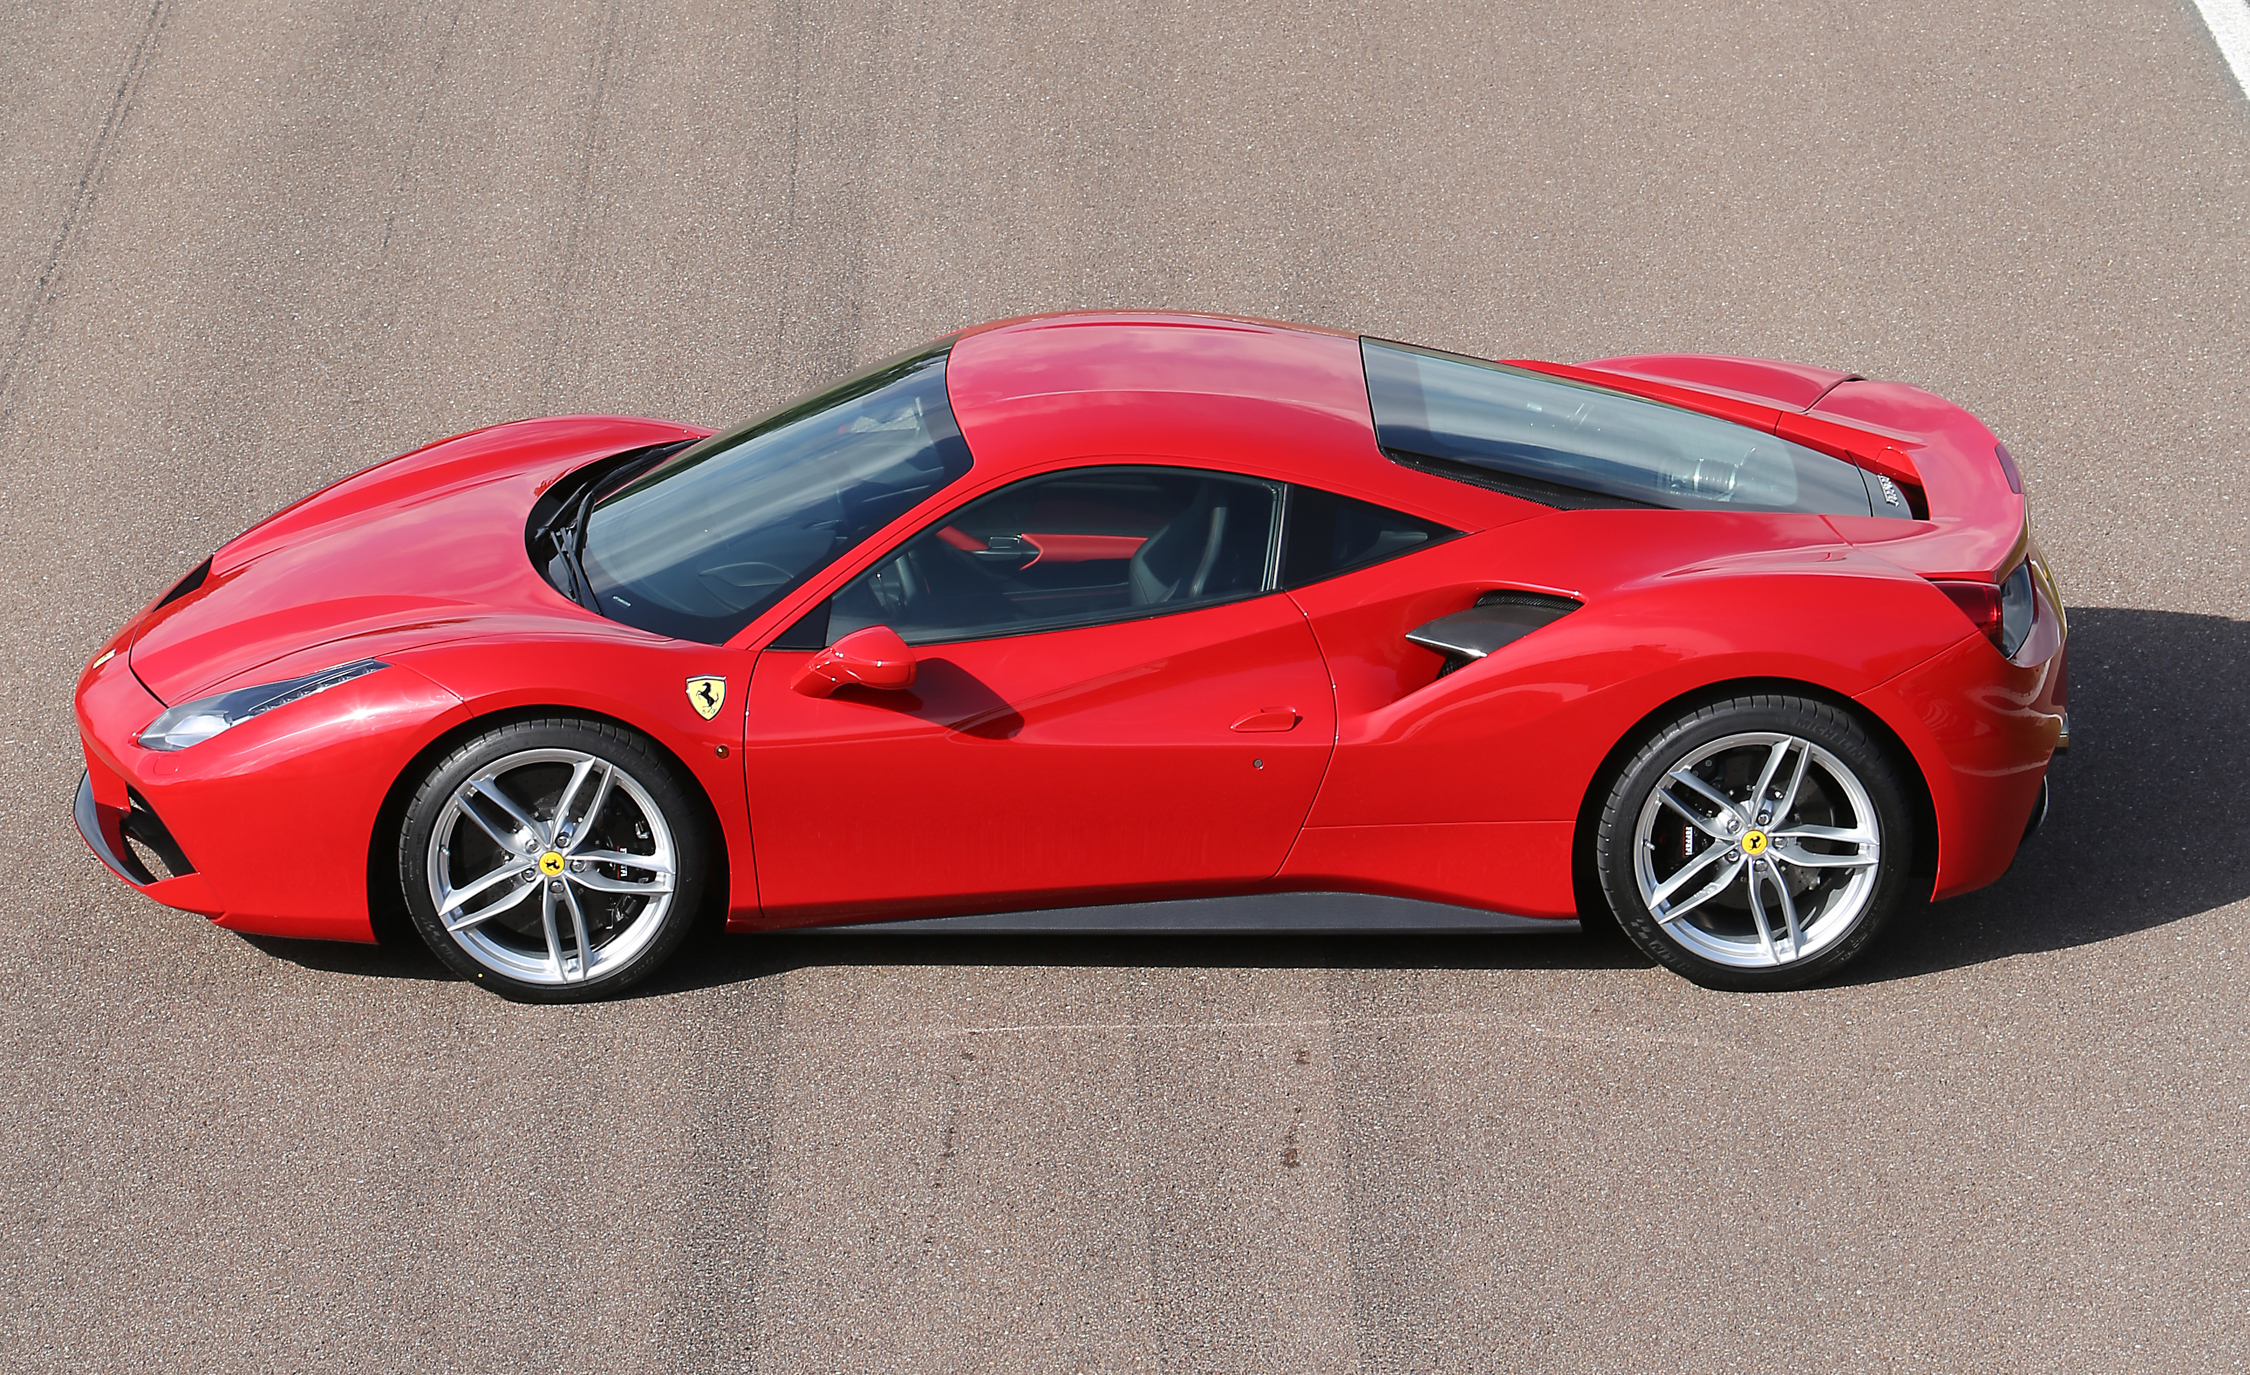 2016 Ferrari 488GTB Exterior Full Top and Side